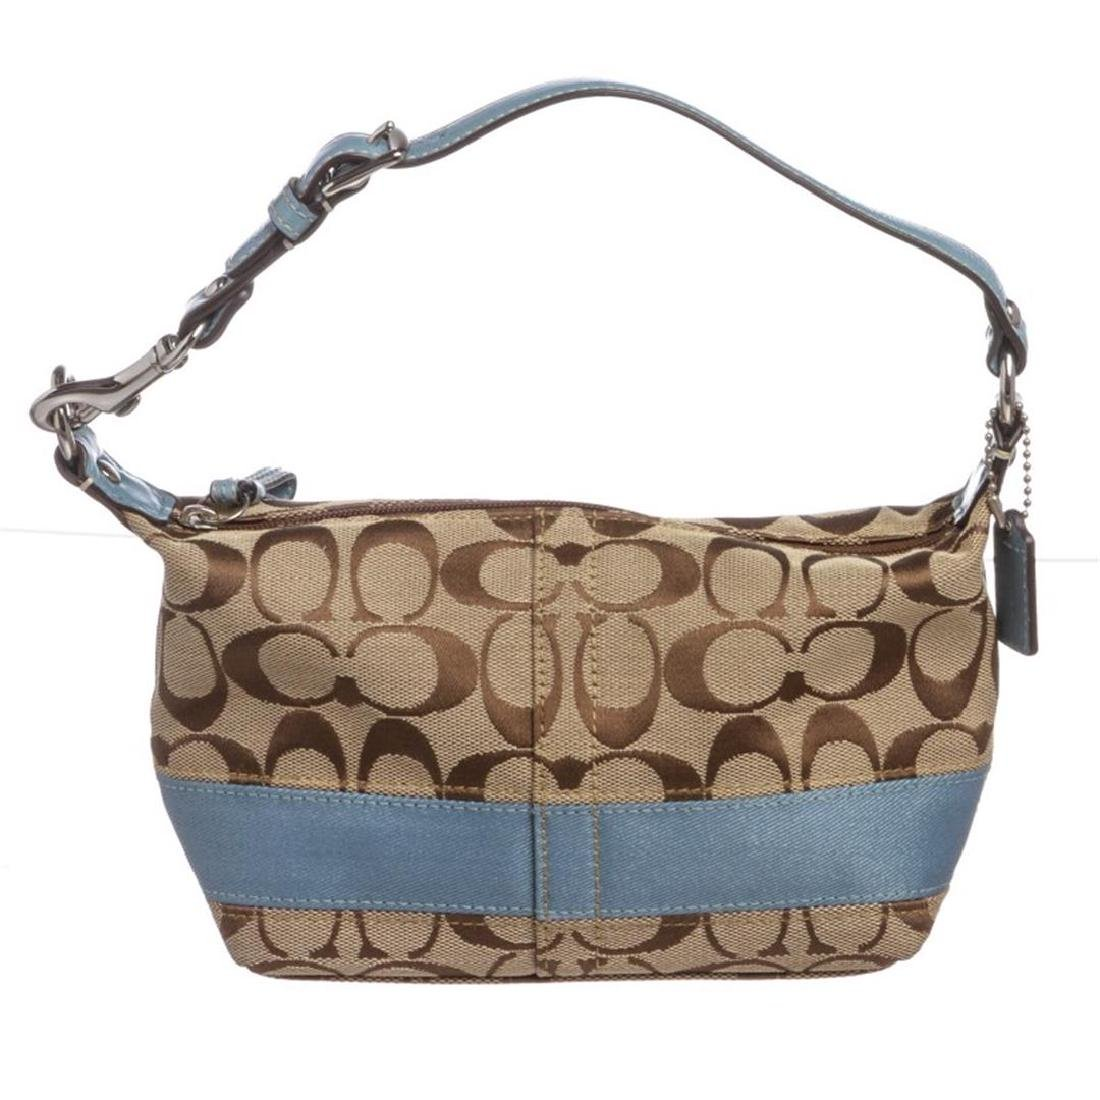 Coach Beige Canvas Monogram Blue Leather Trim Mini